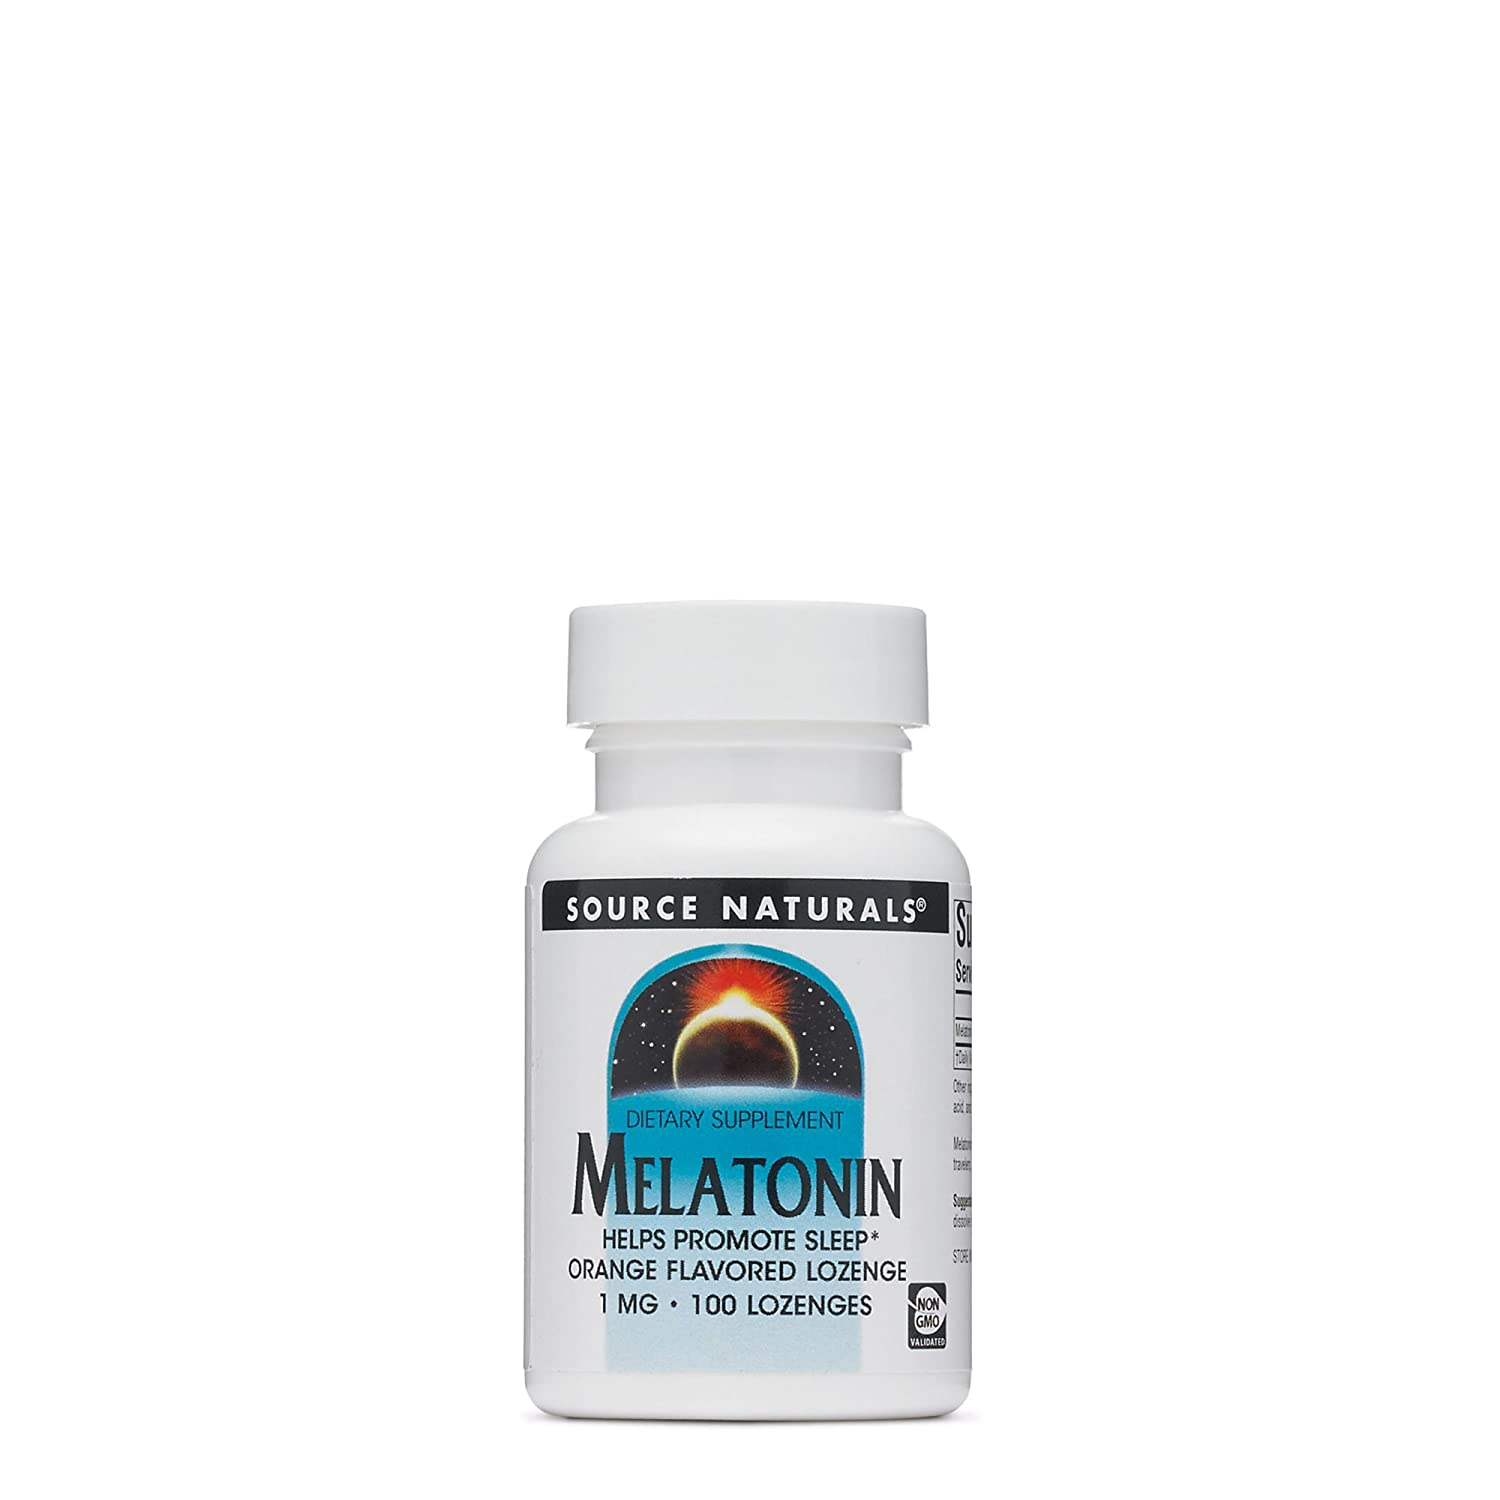 Amazon.com: Source Naturals, Melatonin Sublingual Orange 1Mg, 100 Tablets: Health & Personal Care